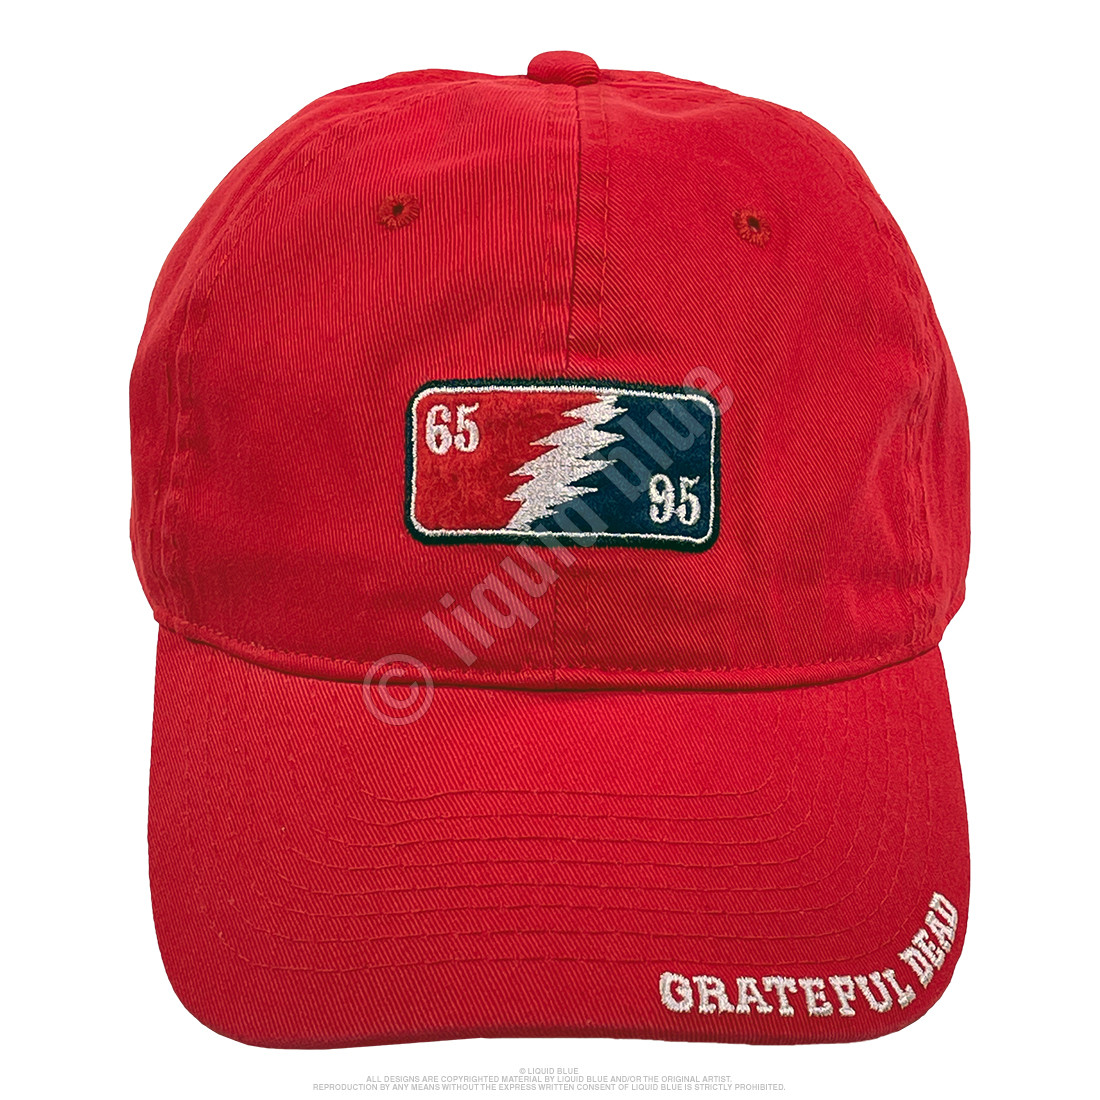 GD 65-95 Red Hat